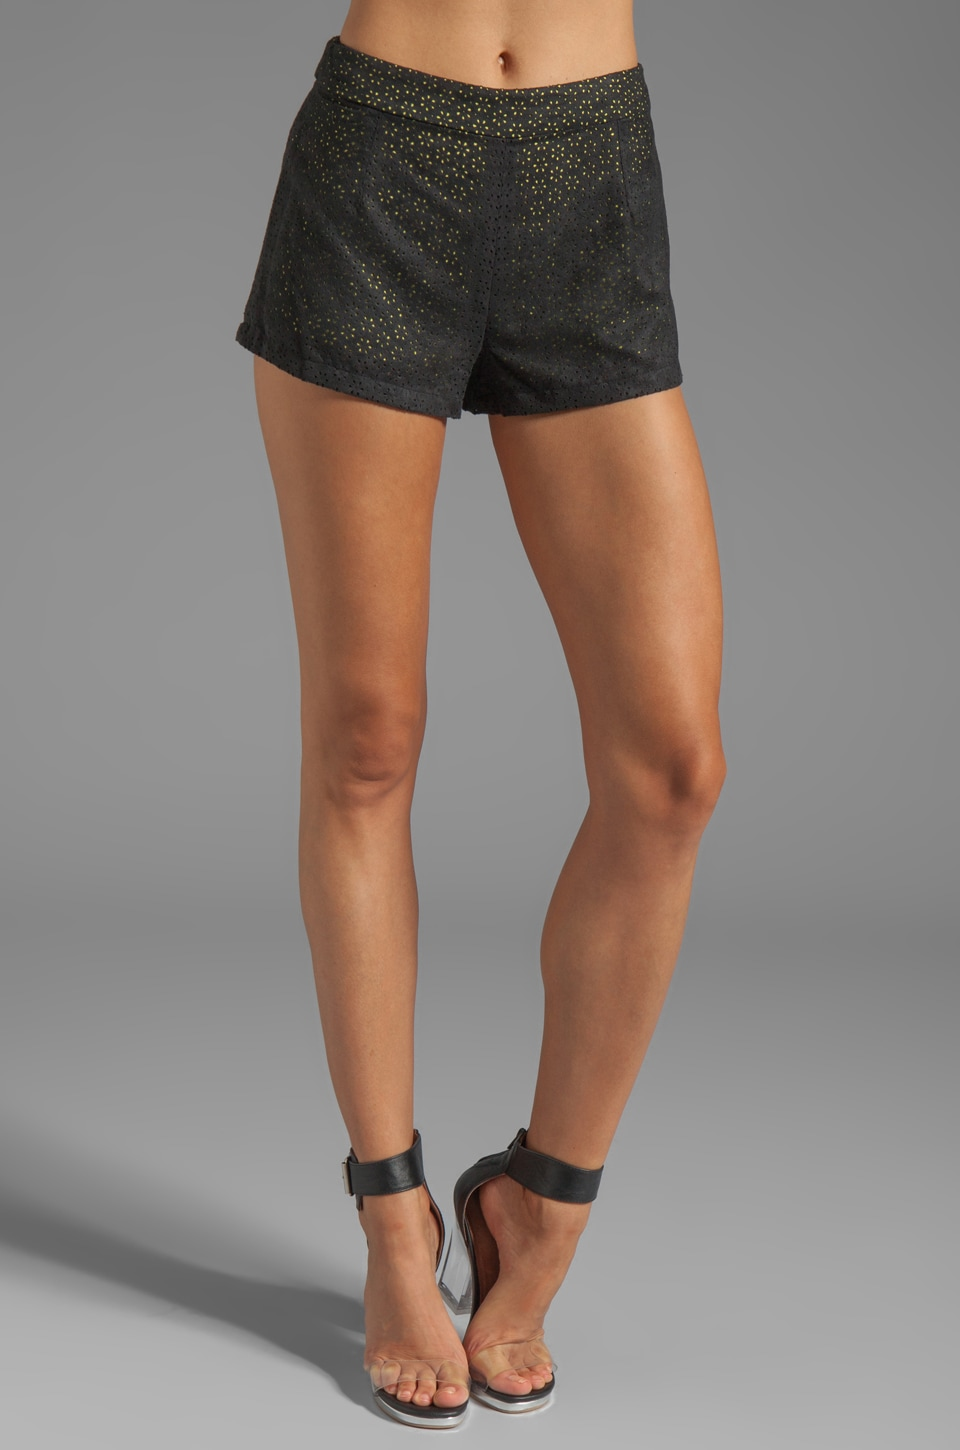 Ladakh Cut It Out Shorts in Black